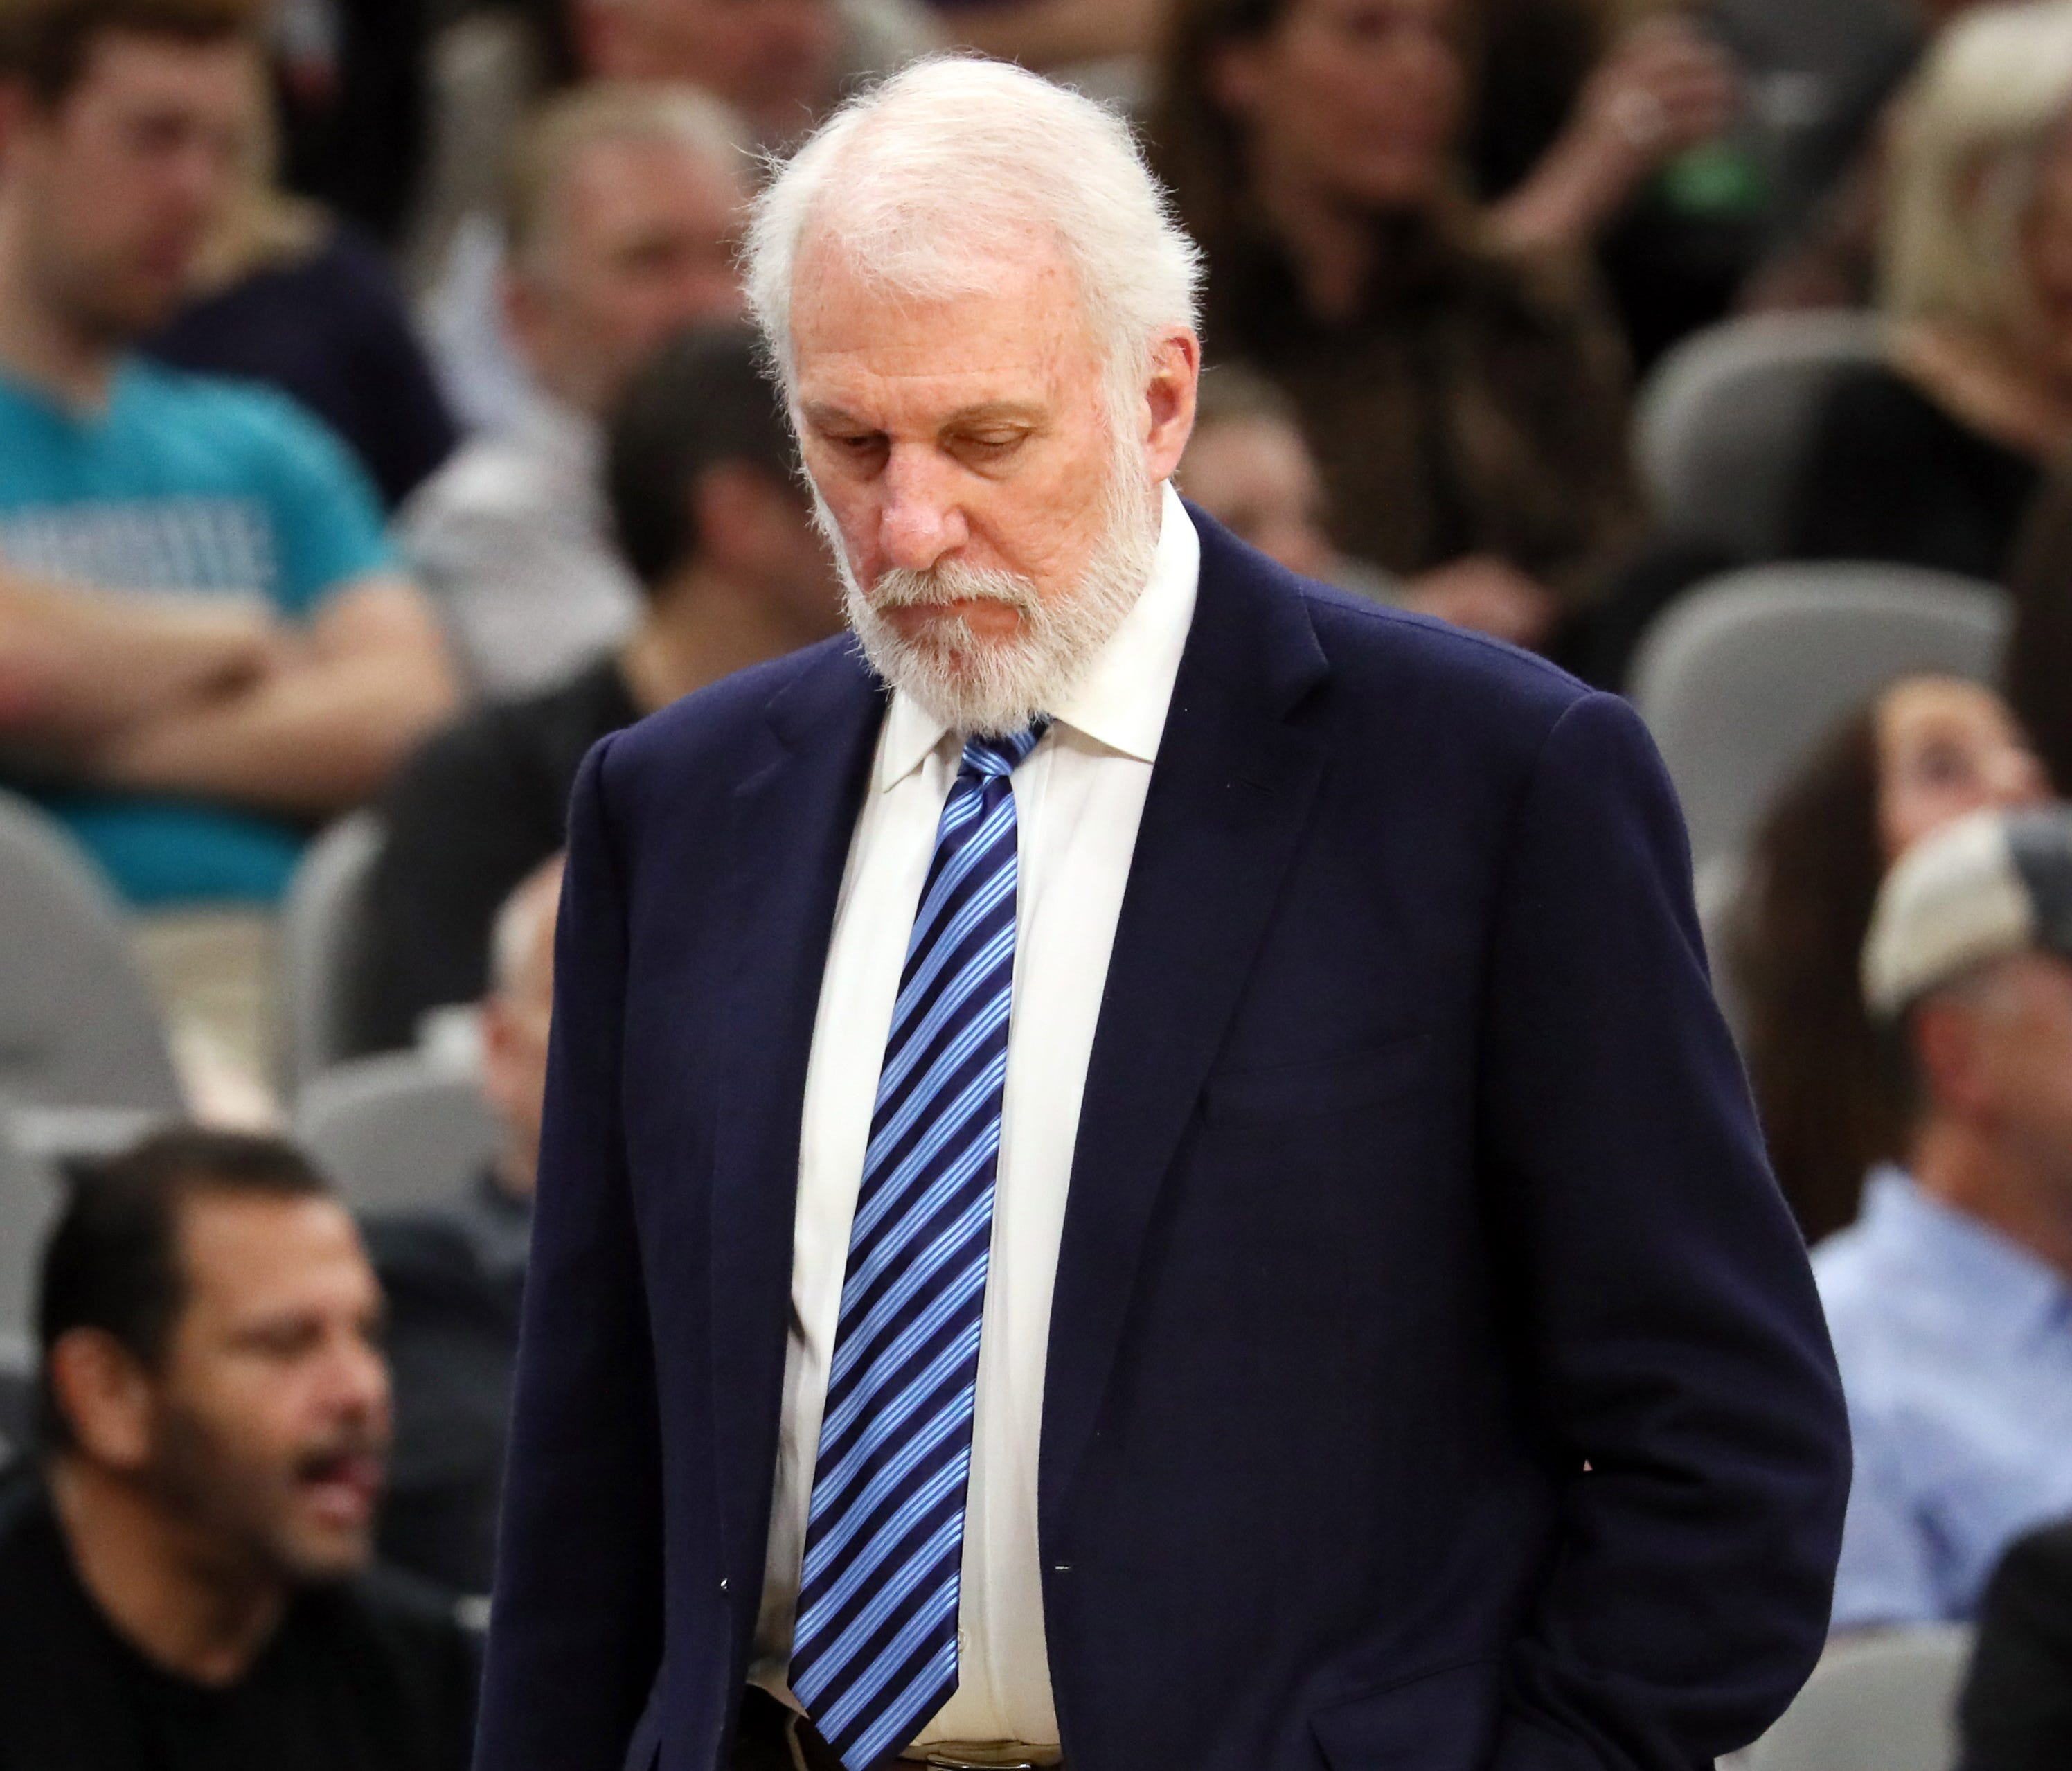 San Antonio Spurs head coach Gregg Popovich during the first half against the Memphis Grizzlies.